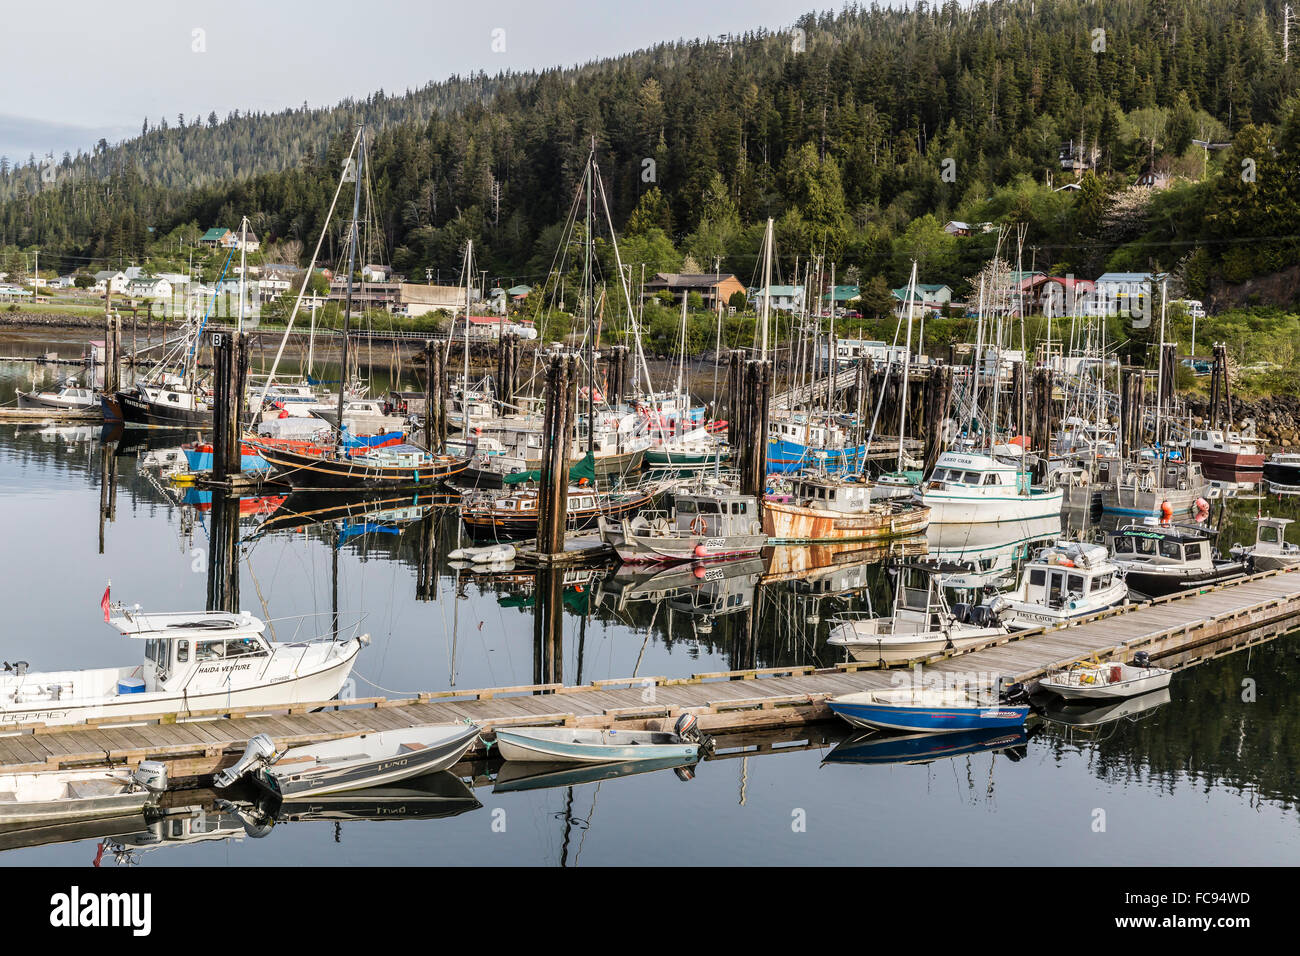 Queen Charlotte City Harbor, Bearskin Bay, Haida Gwaii (Queen Charlotte Islands), British Columbia, Canada, North - Stock Image